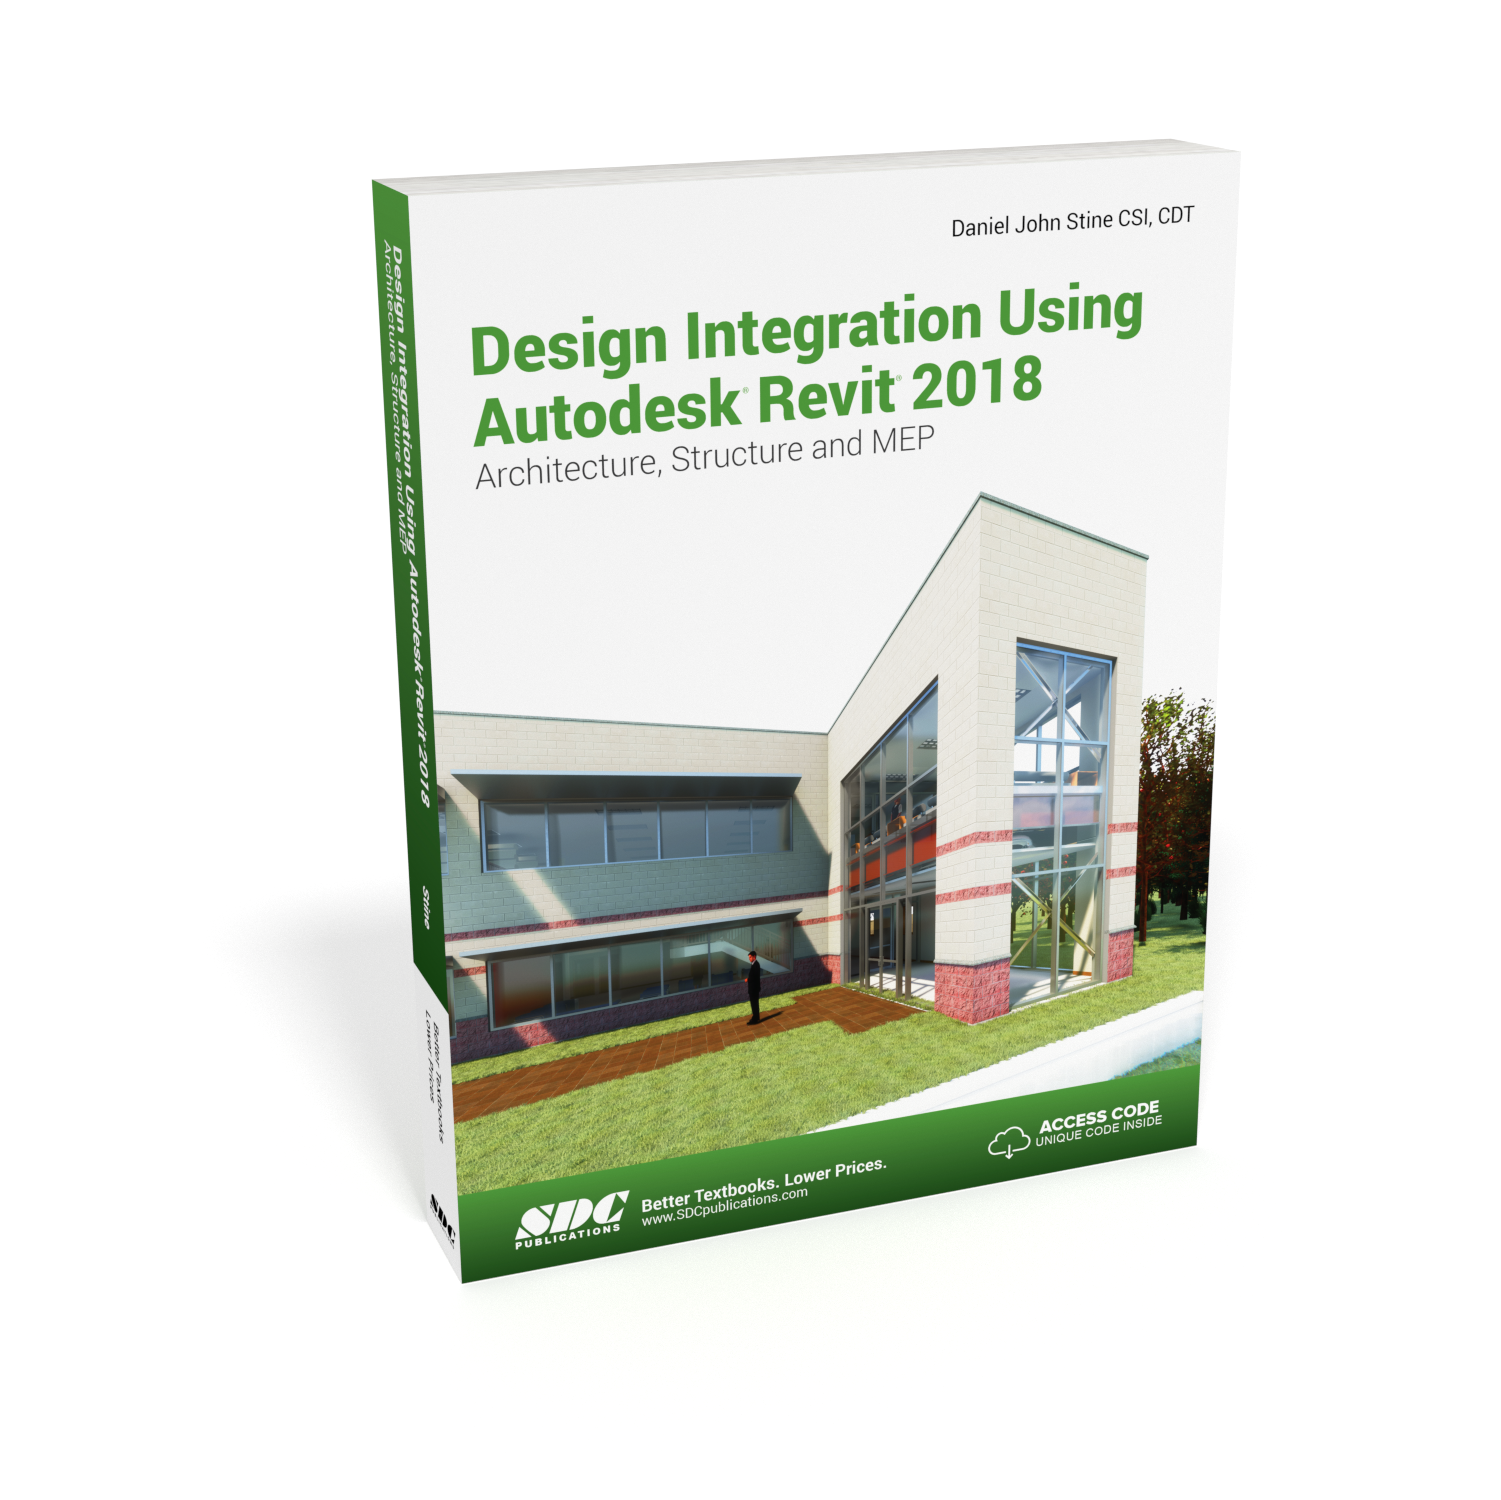 This Book Provides An Introduction To Architecture Interior Design Structural Mechanical Electrical And Plumbing Thus Offering A Well Rounded Overview